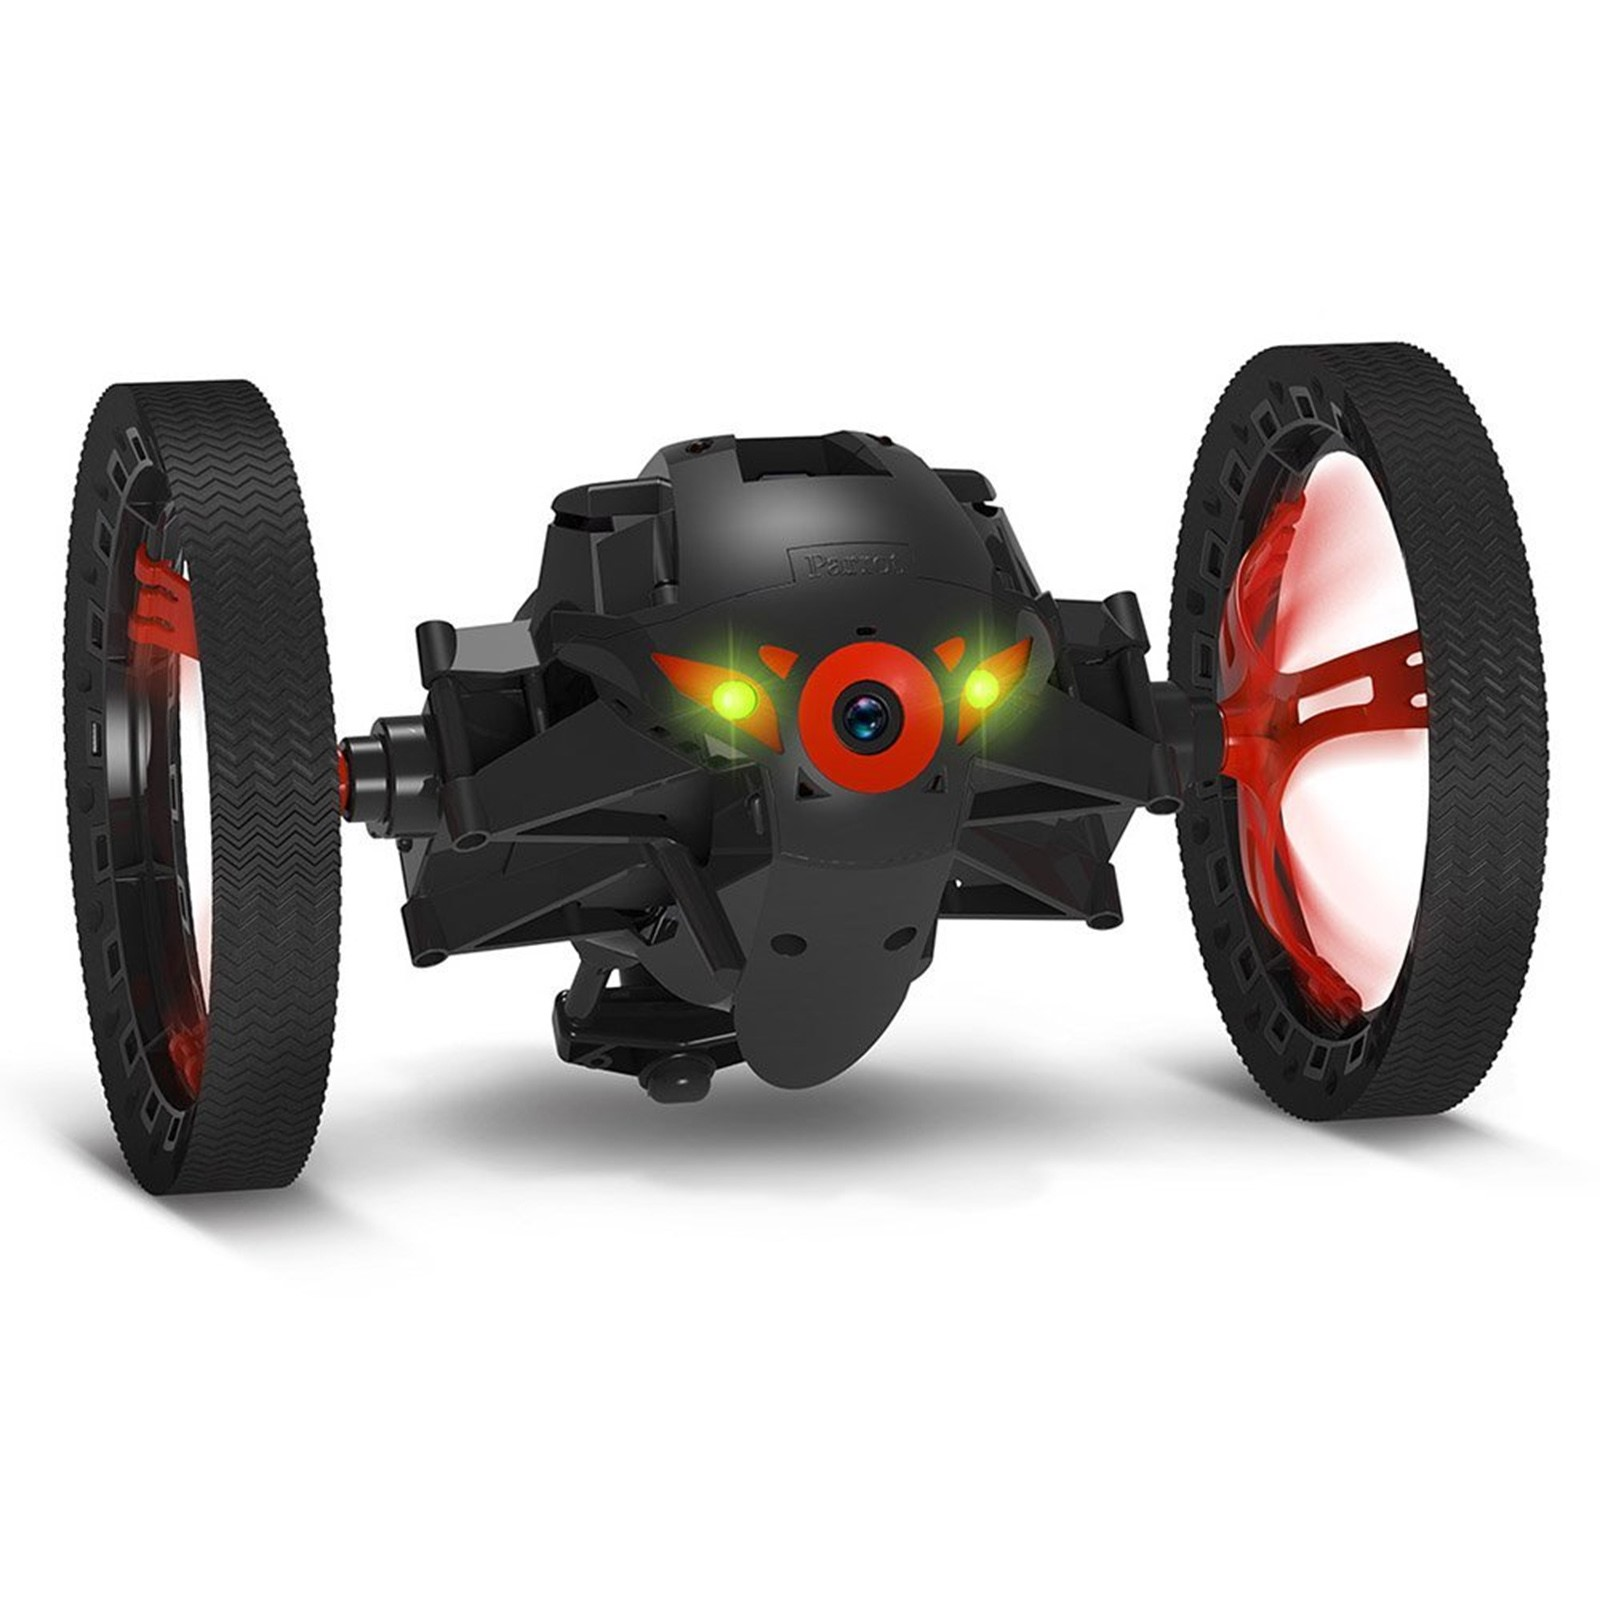 drone with hd camera with 152524925915 on 32801474227 furthermore Openrov Trident Underwater Drone Kickstarter furthermore Drone Saint Malo likewise Bahias De Huatulco 8 furthermore Best Budget Drones.